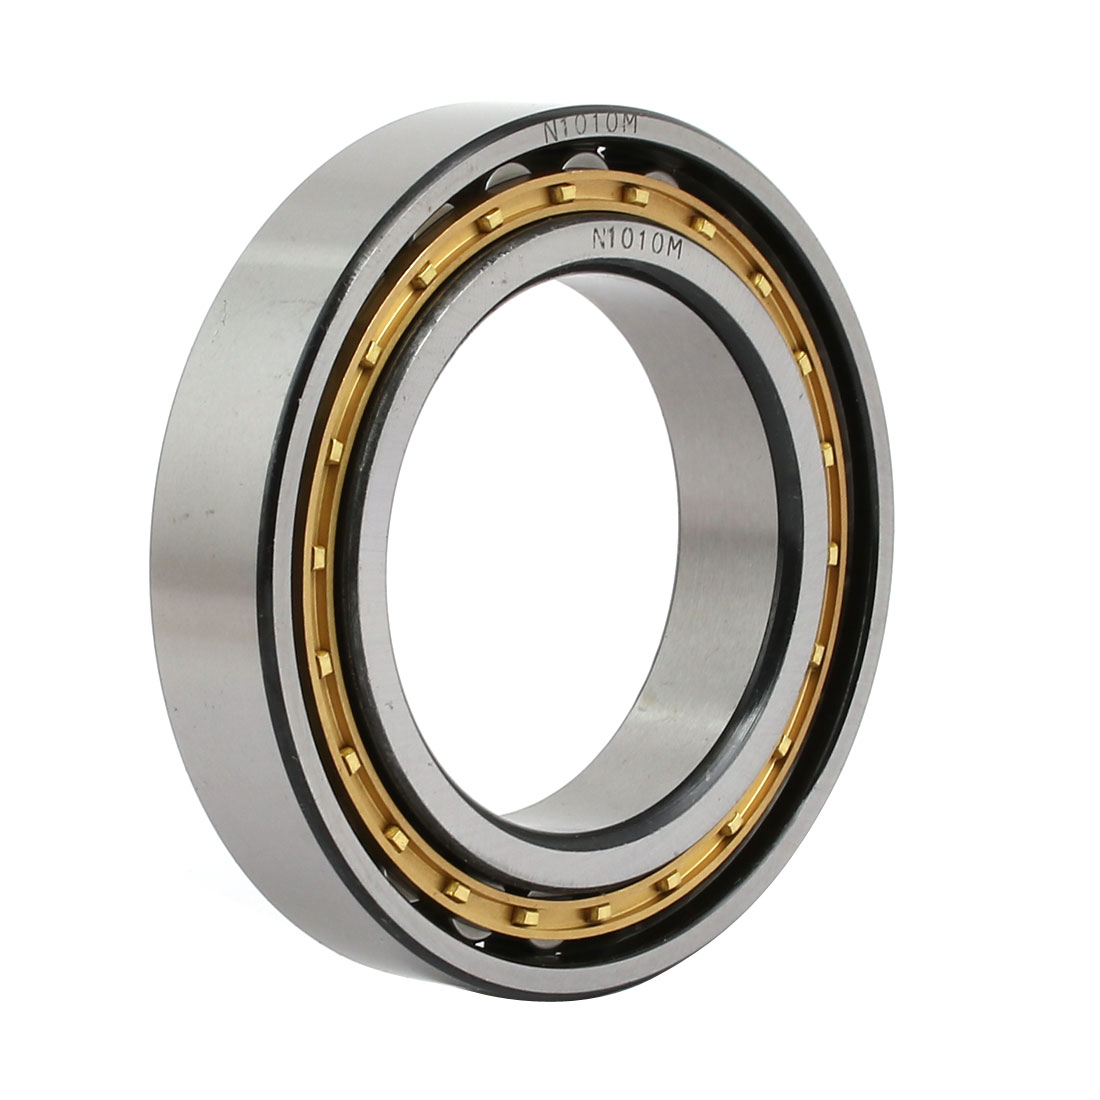 N1010M 80mmx50mmx16mm Single Row Cylindrical Roller Bearing